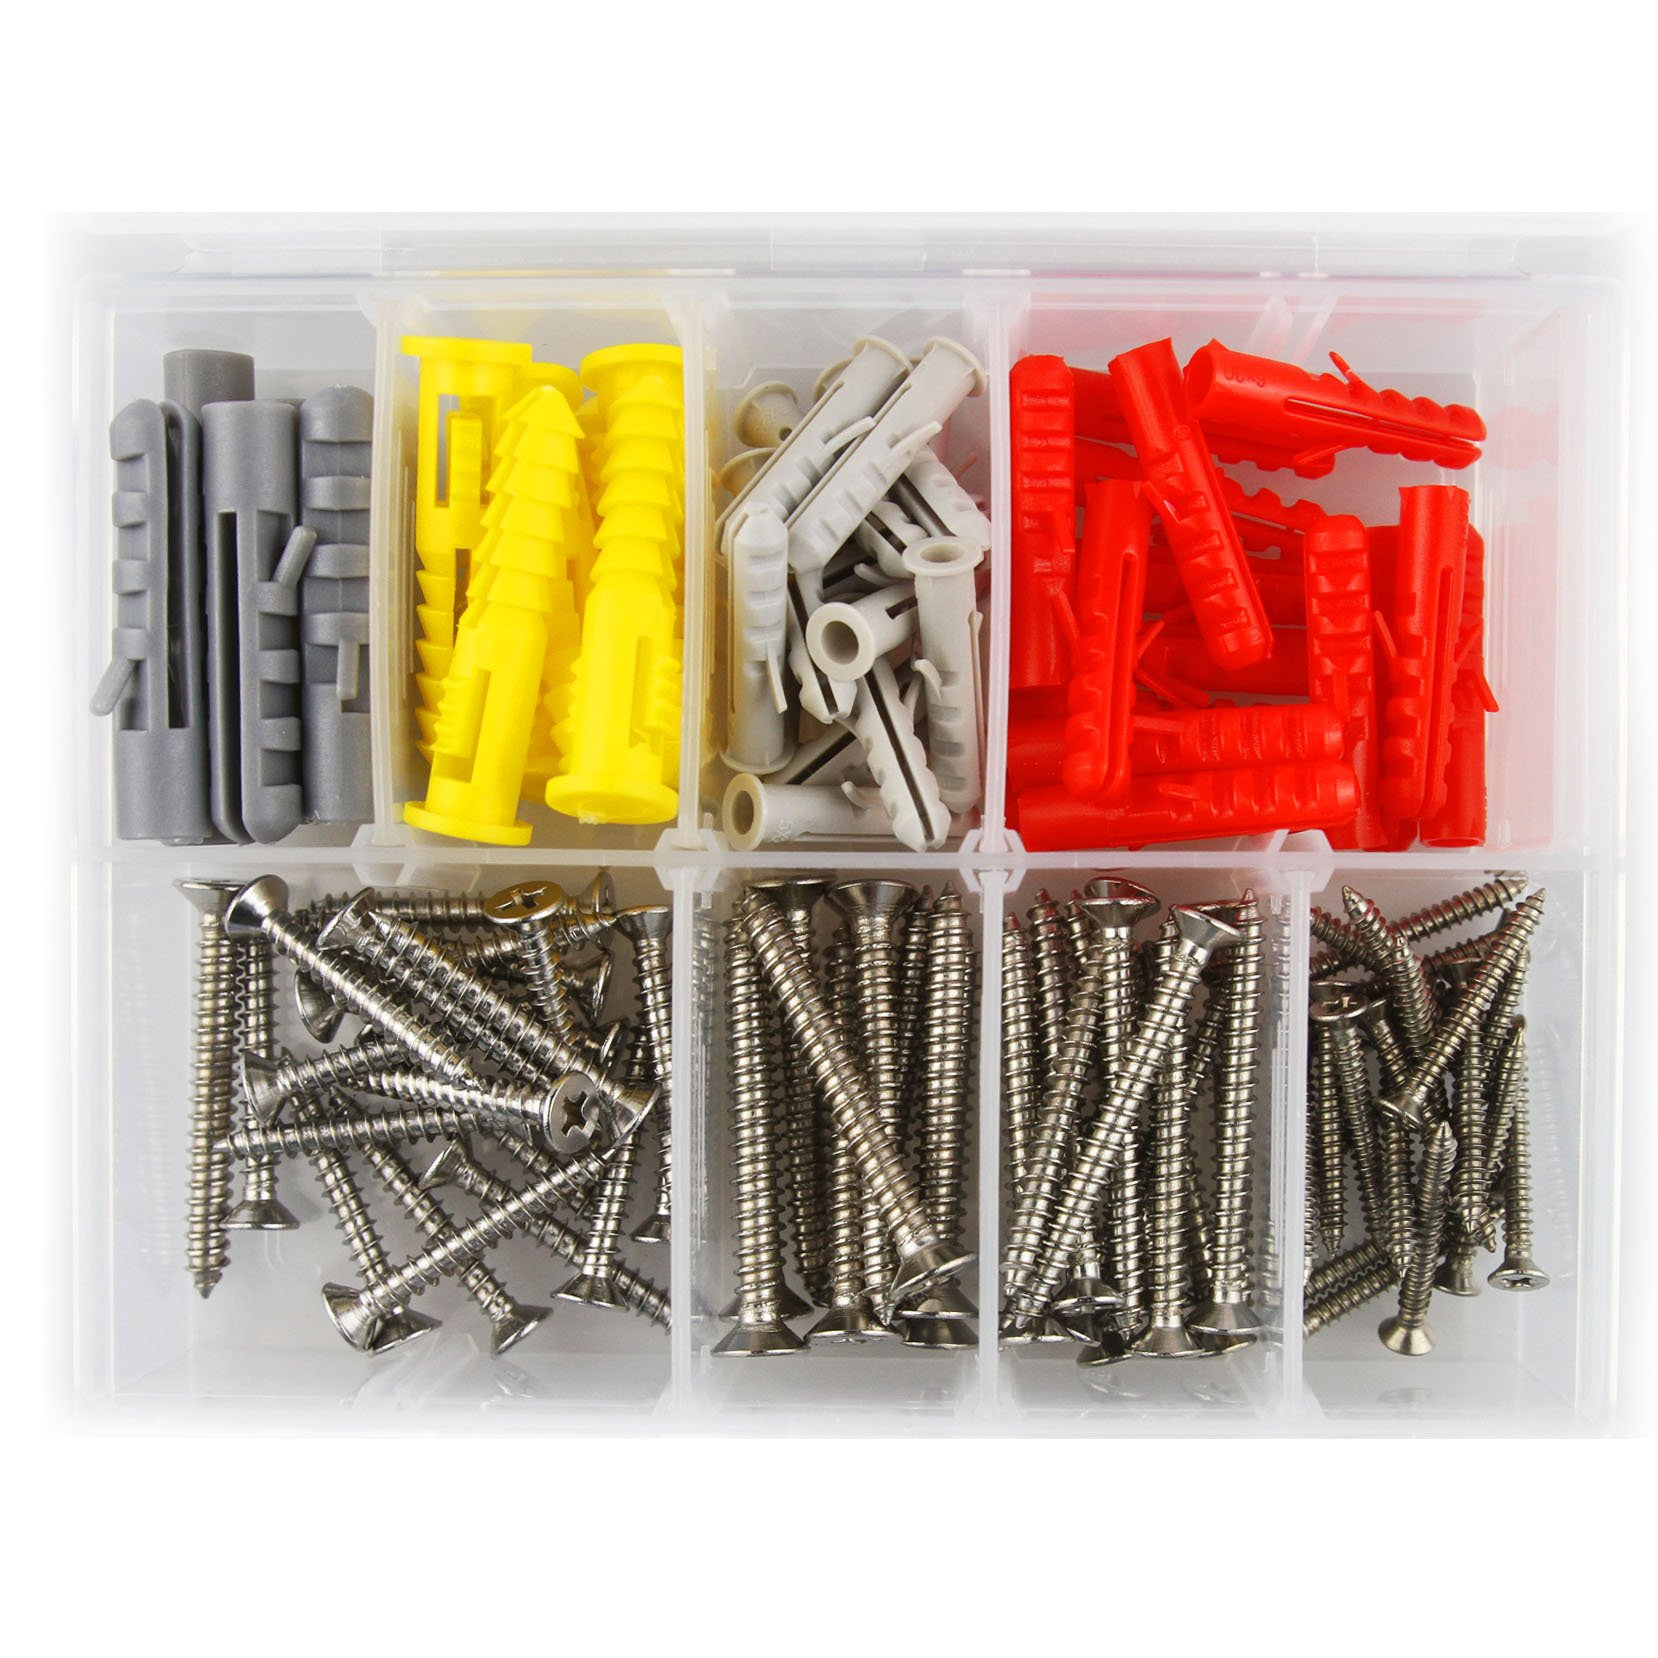 Molly bolts, Self Drilling drywall anchors Stainless Steel screw assortment, heavy duty drywall anchors with screws, sheetrock anchors (110 pcs plastic wall anchors and screws) by Momo Promos